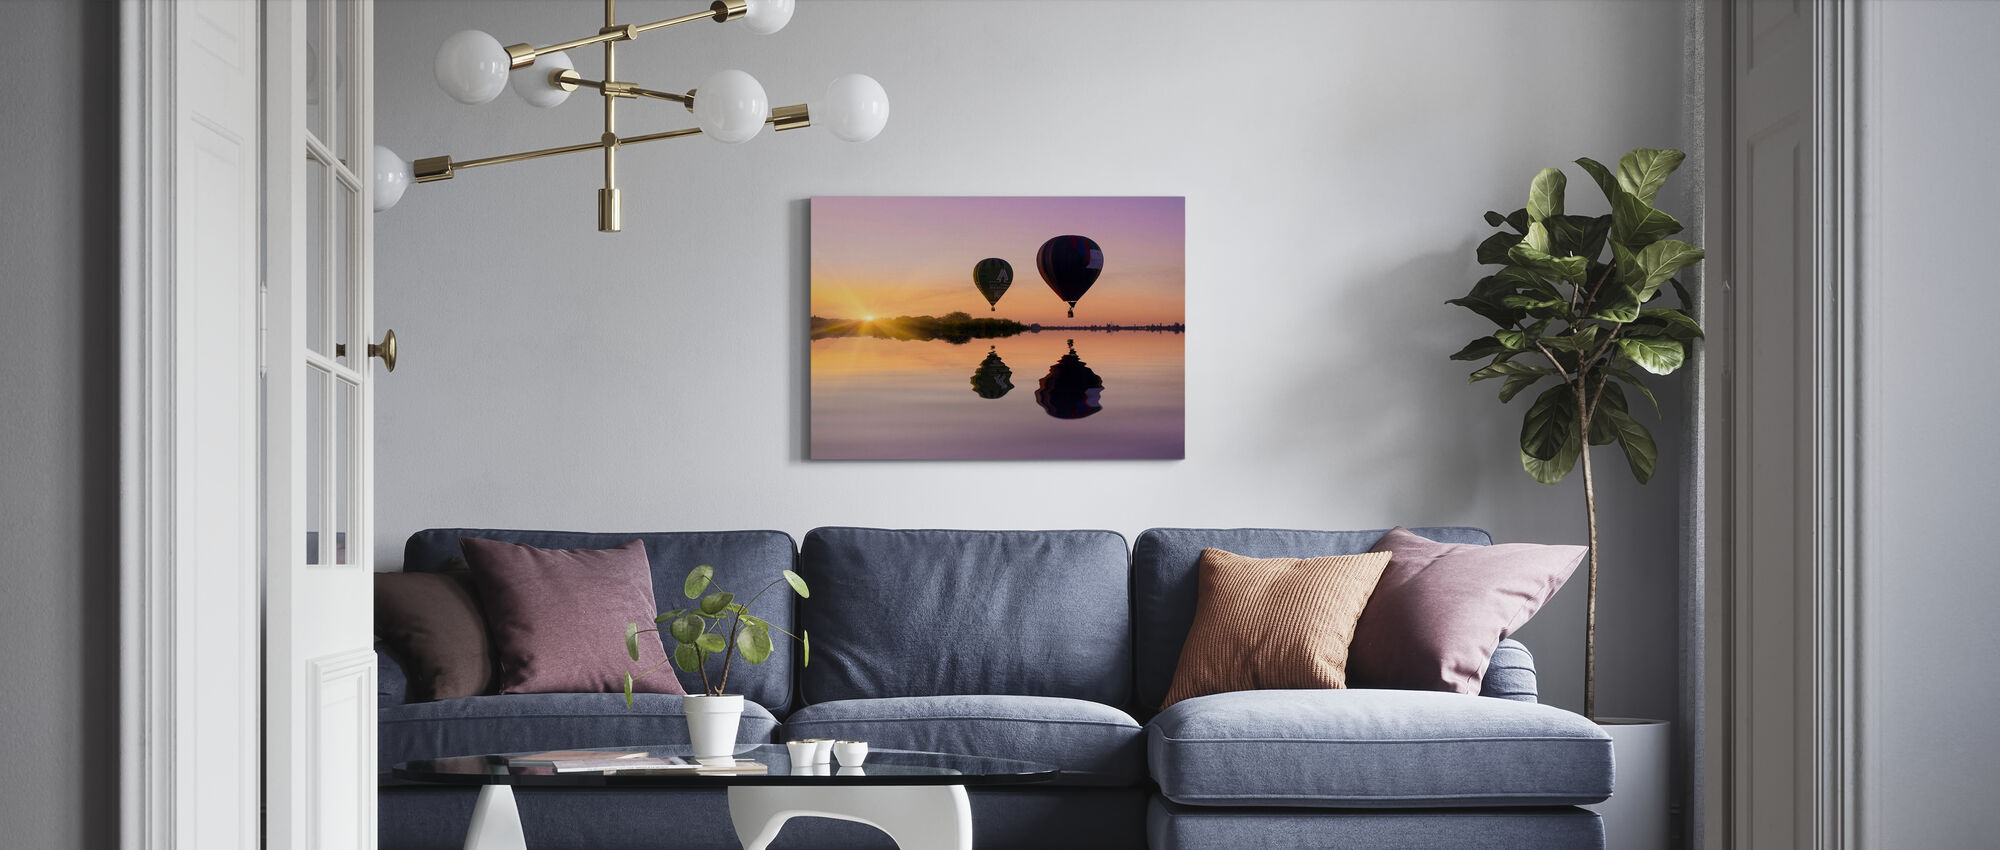 Love is in the Air - Canvas print - Living Room